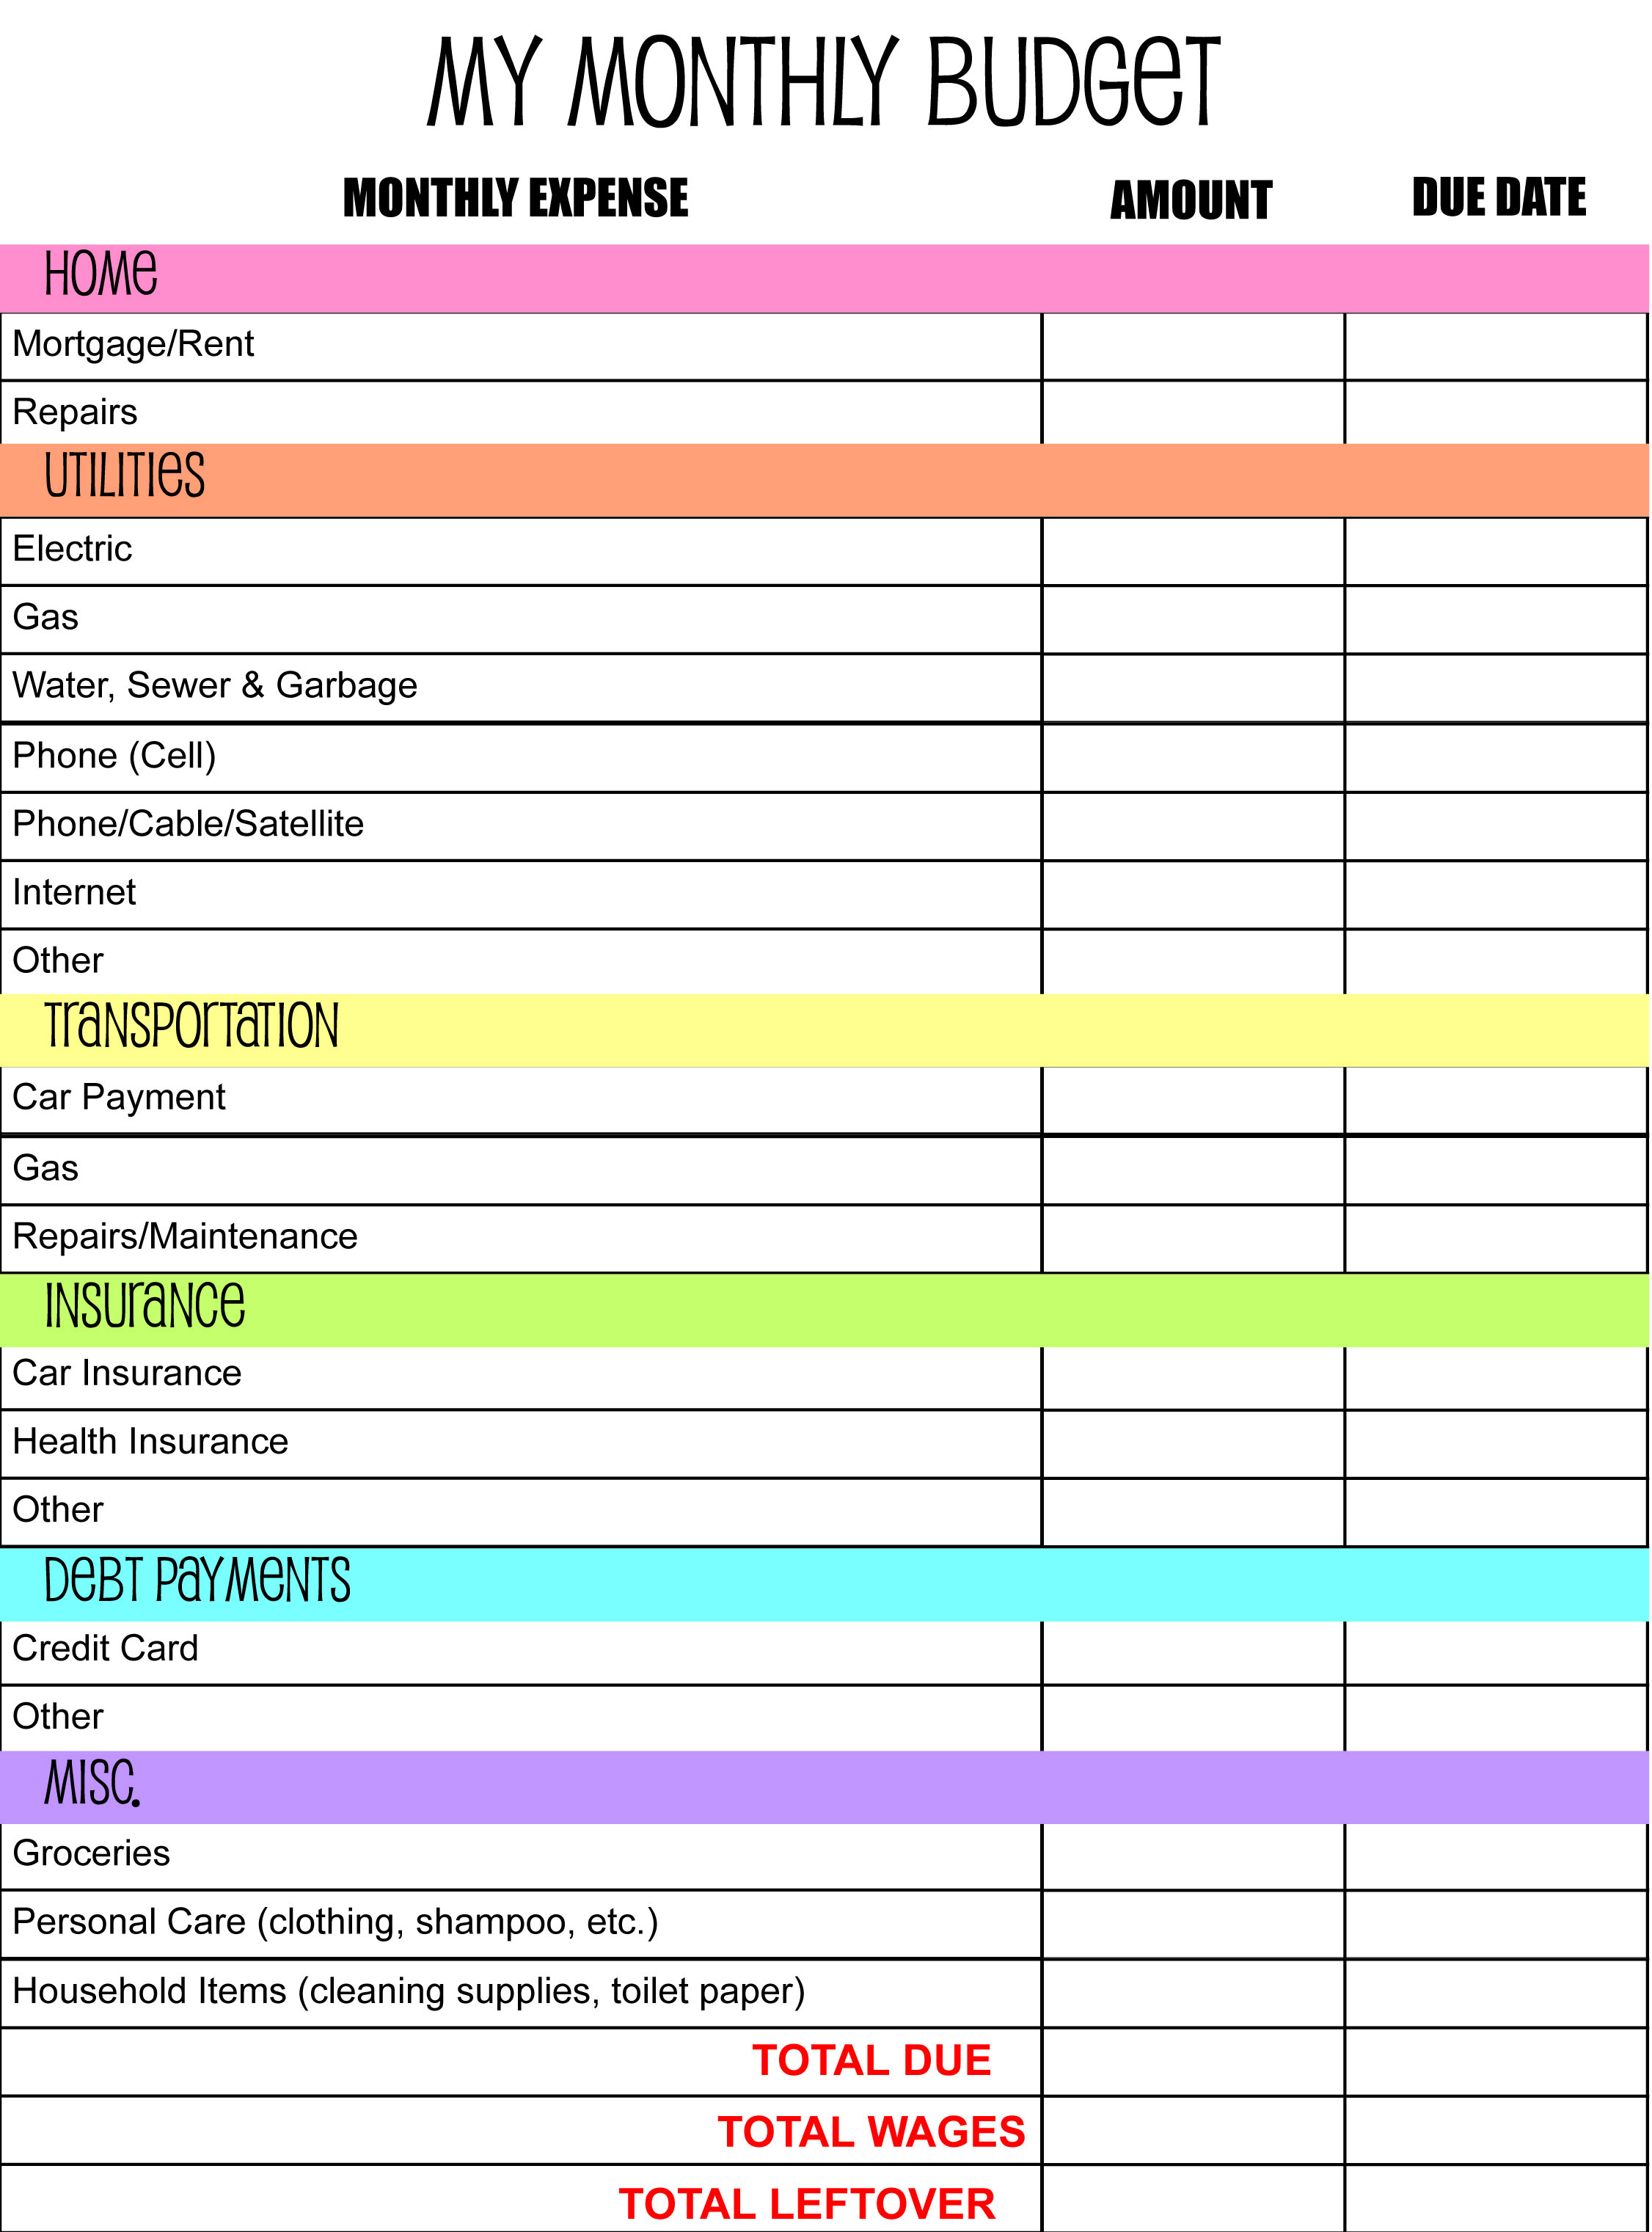 Budget Planner Spreadsheet Template Within Monthly Budget Planner Template Bbfccecfa Slvayi Inspirational